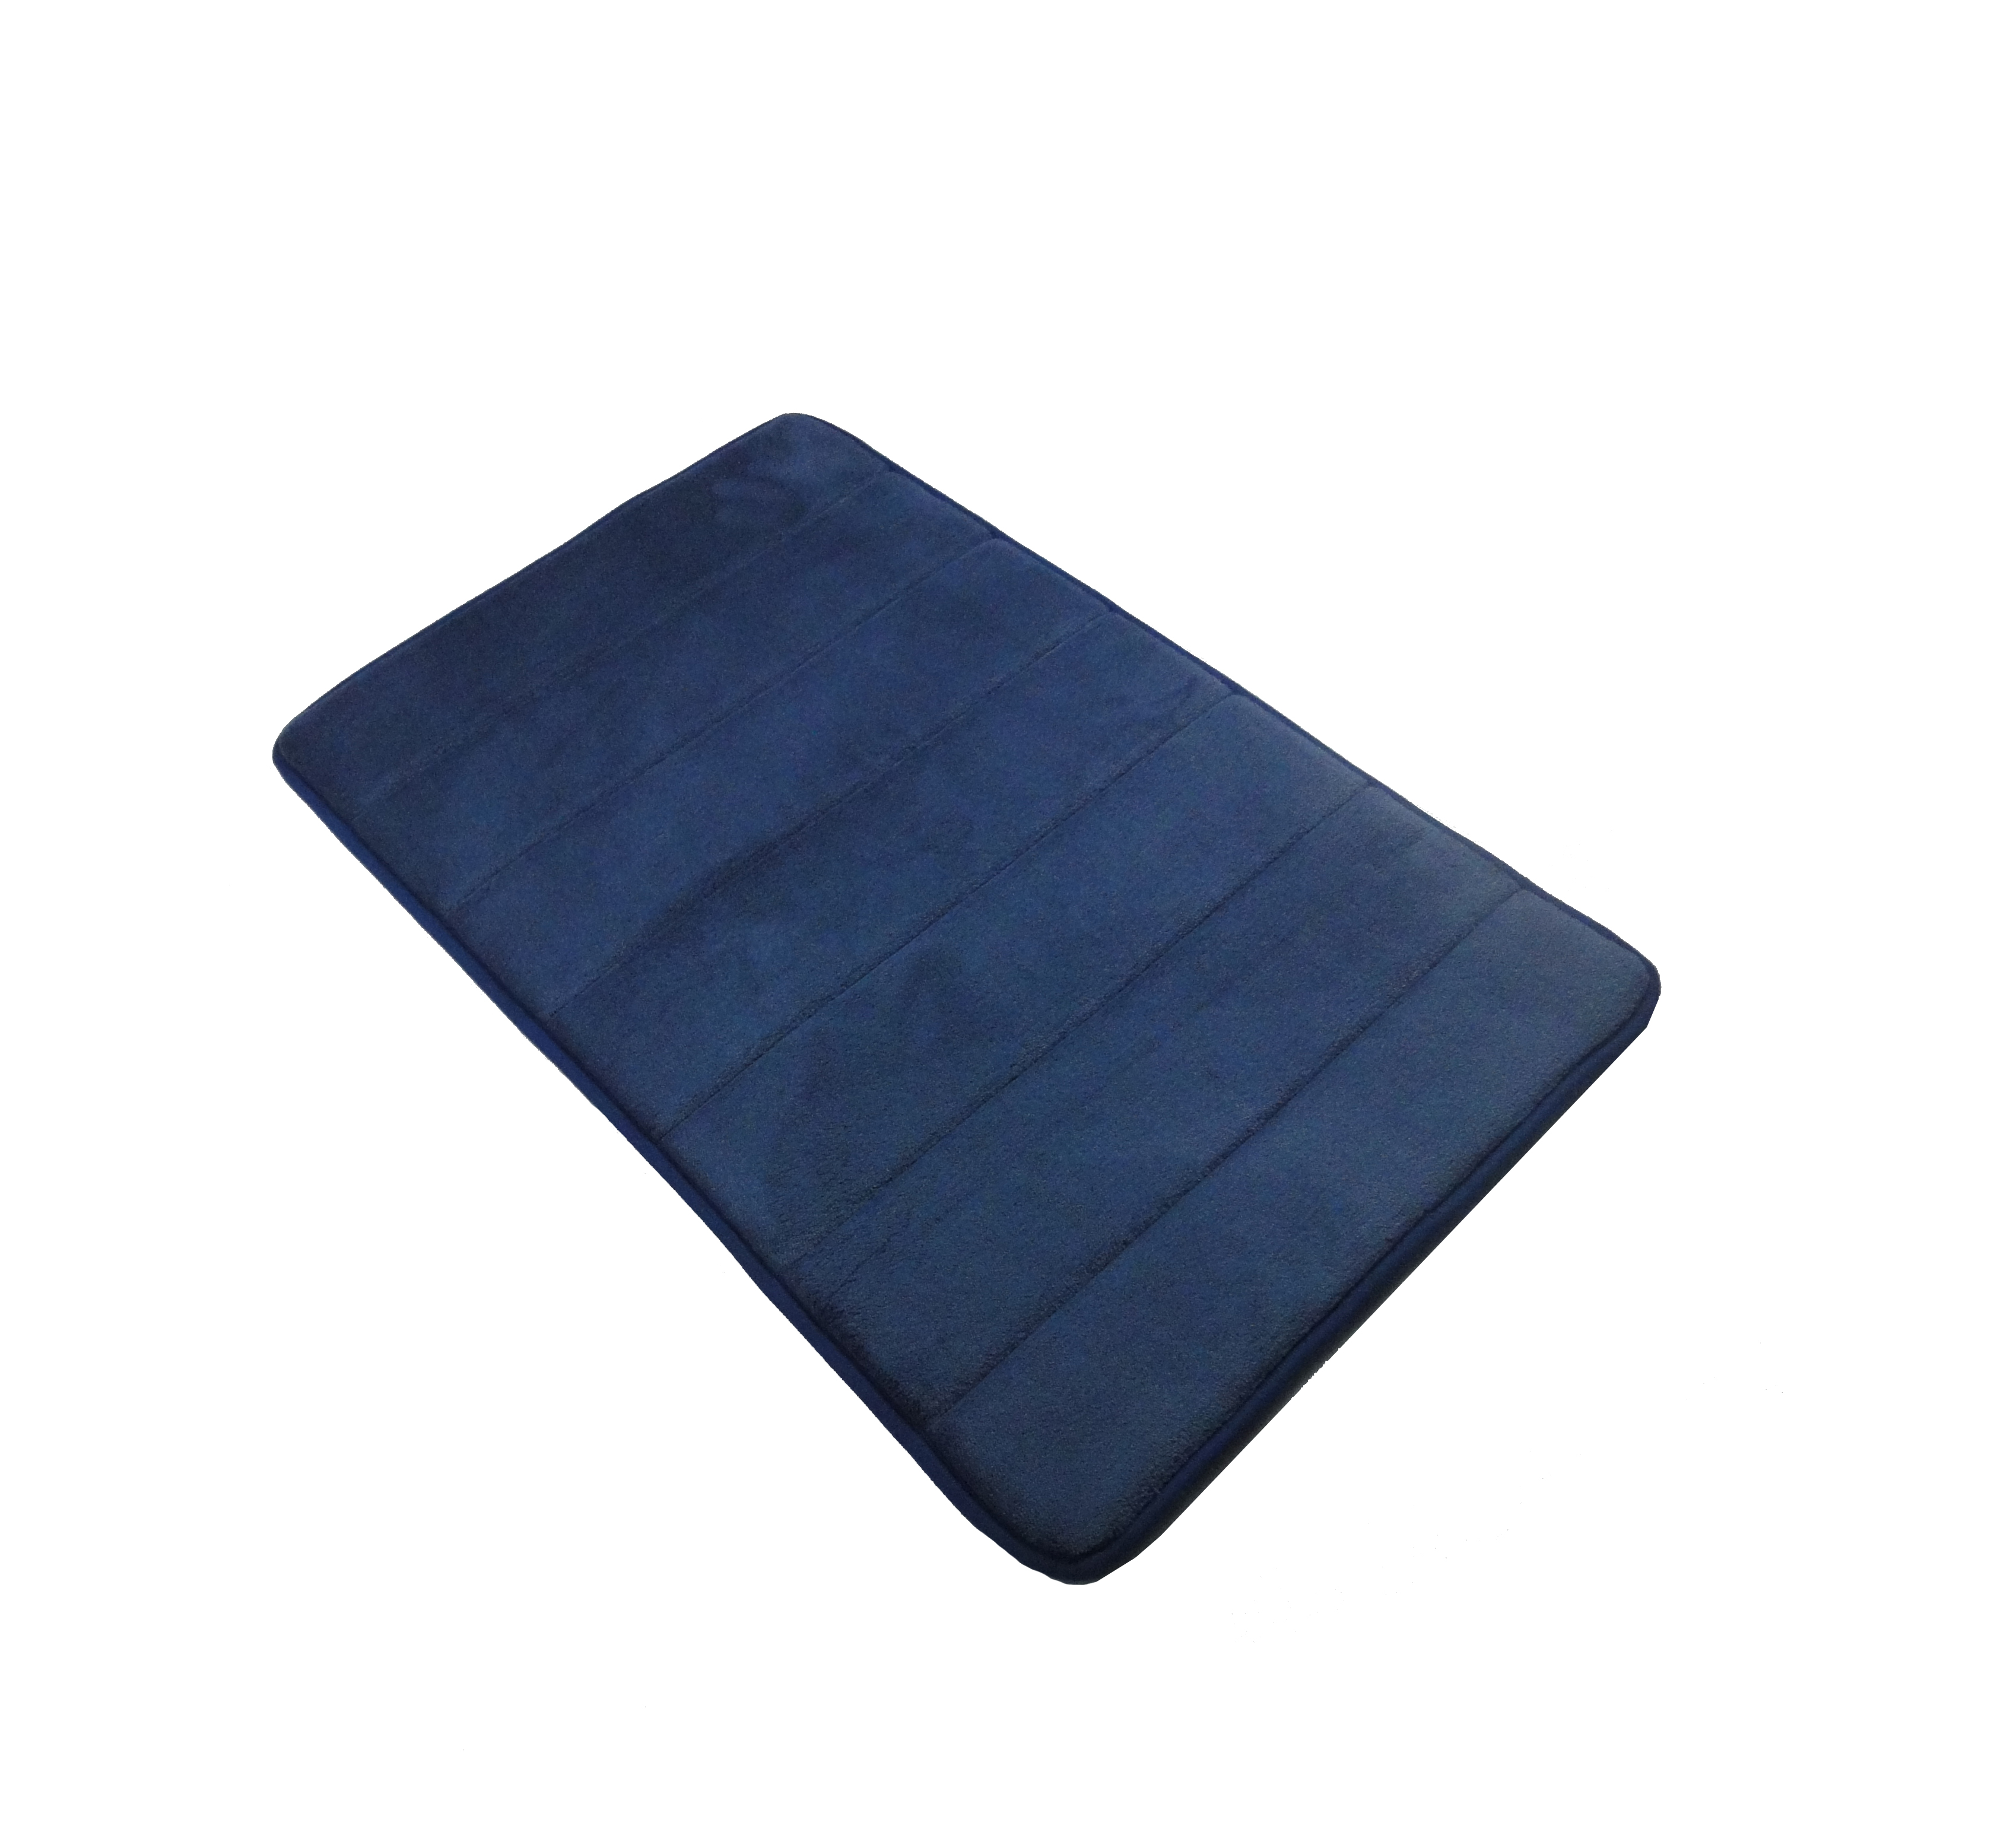 mat mattress today product mats shipping memory free cool gel bath bedding sizes overstock multiple foam avana topper inclined